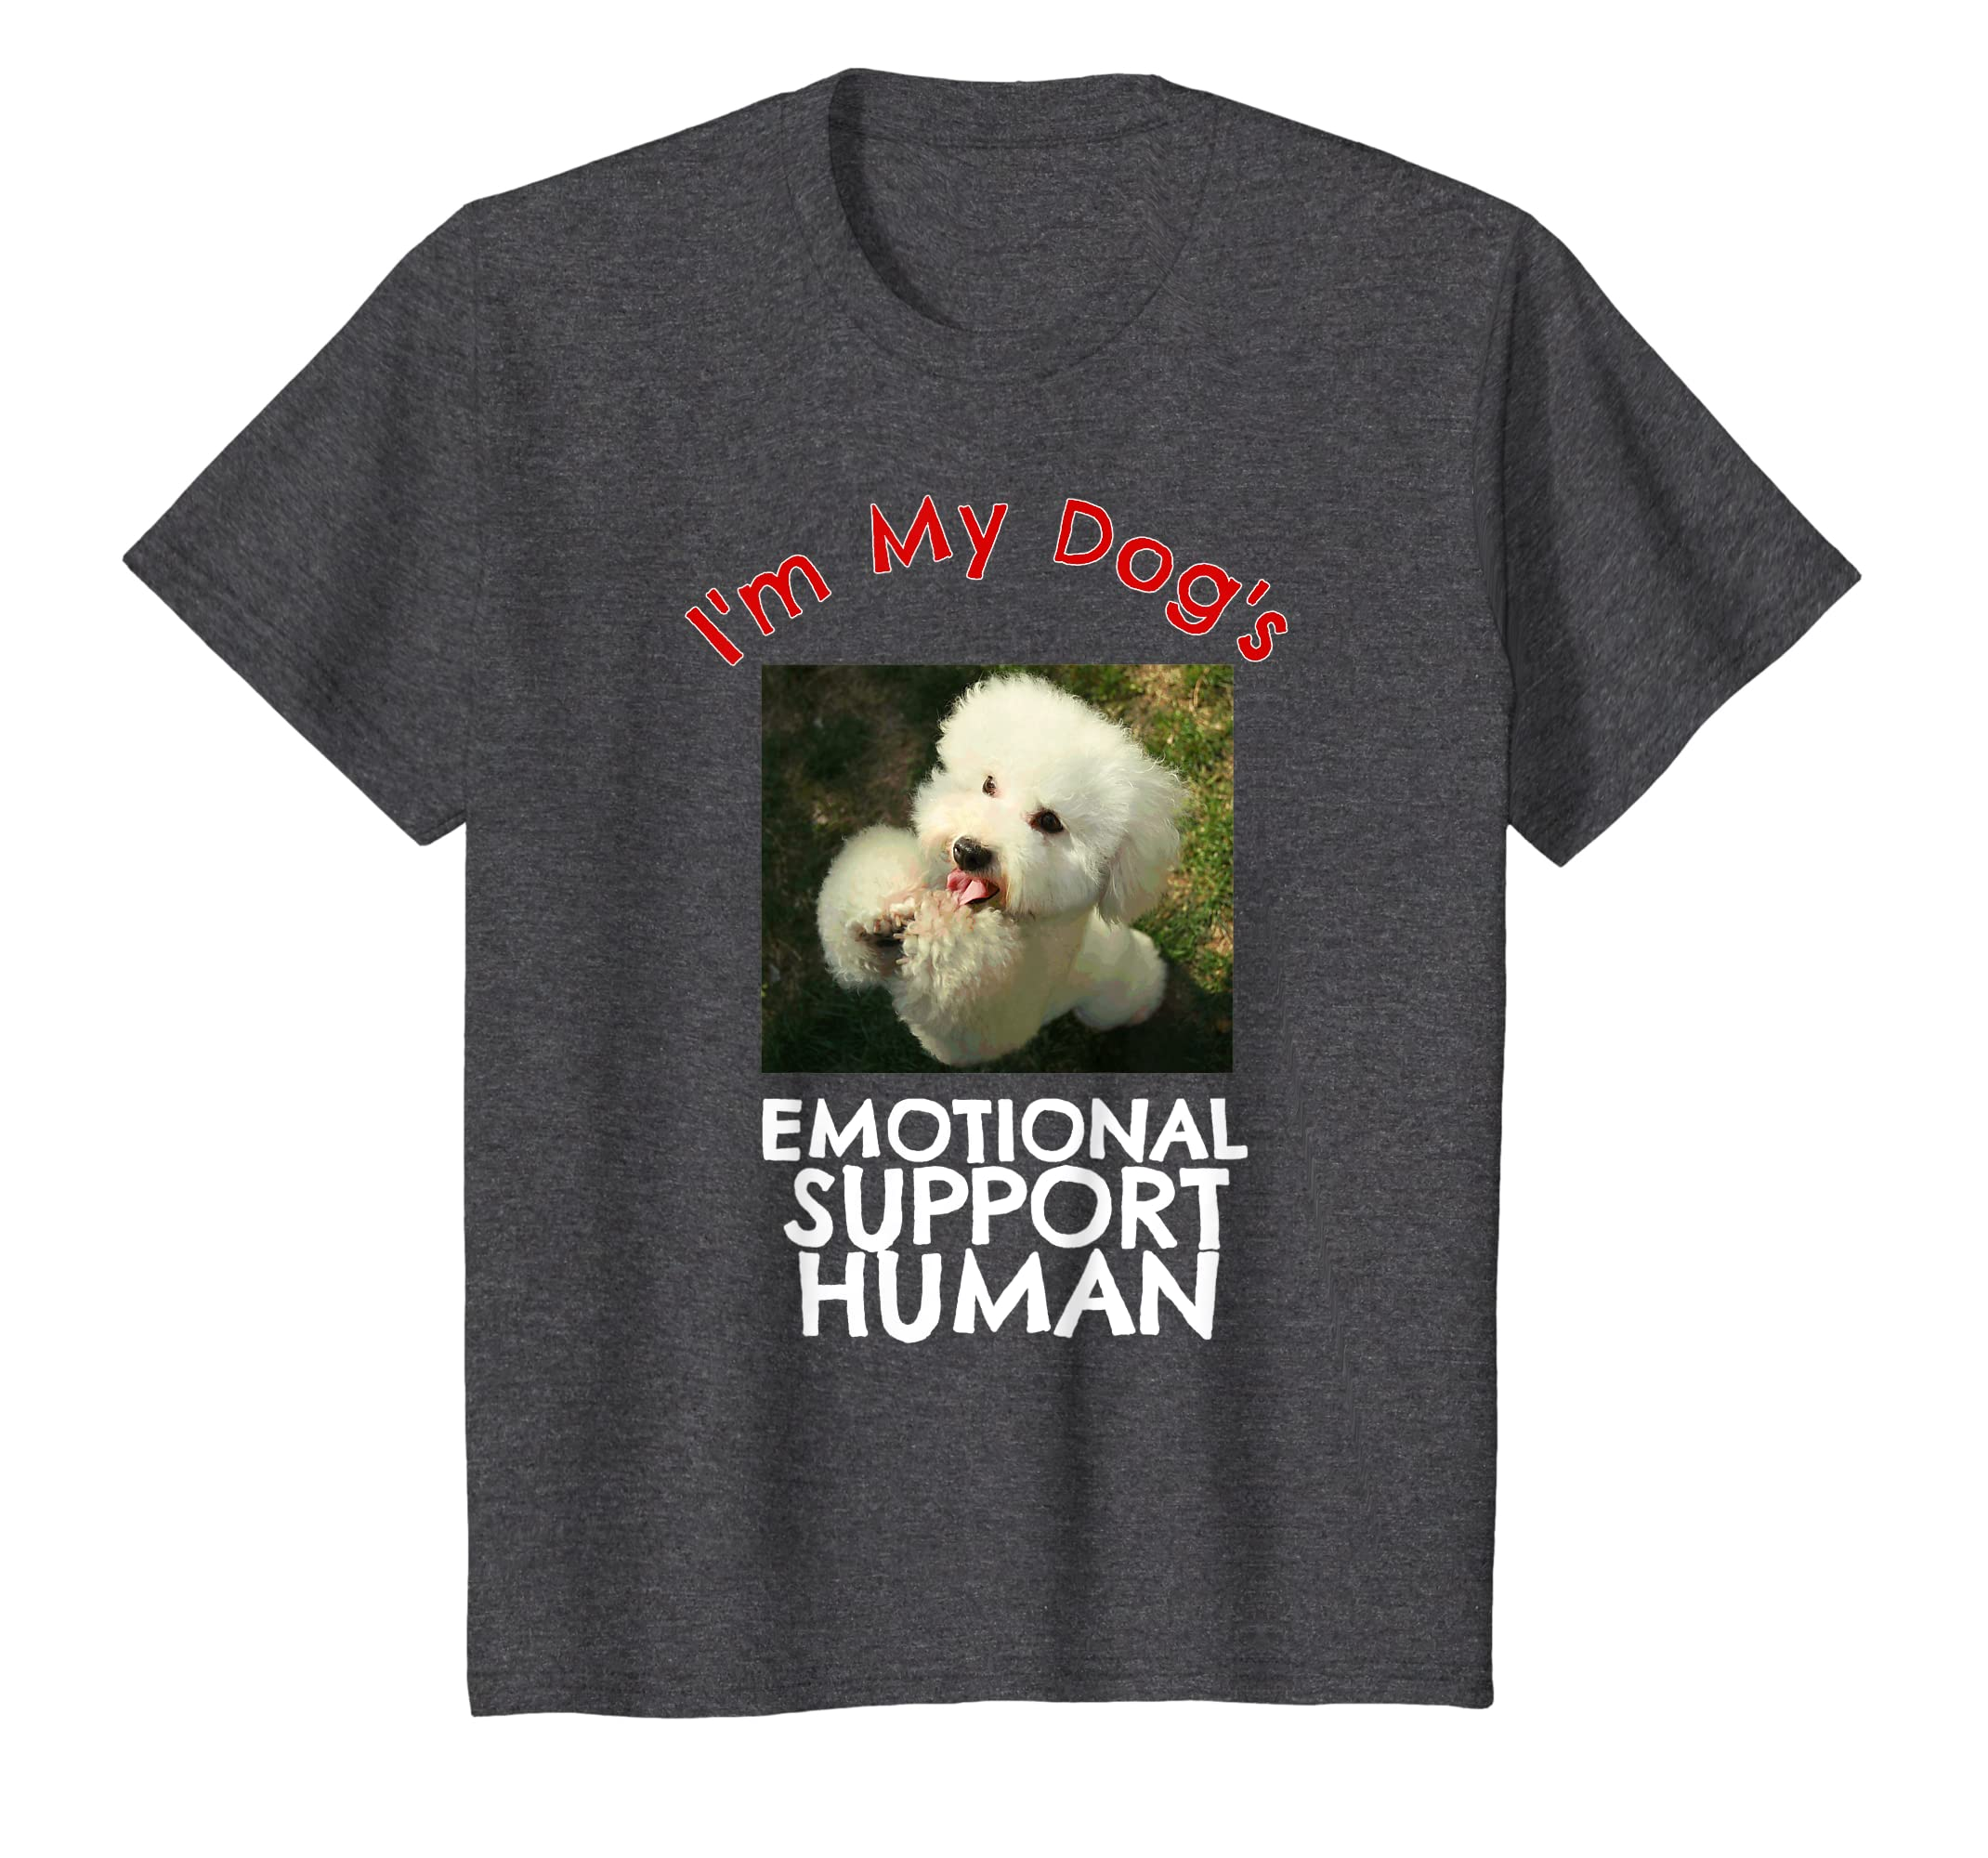 Image of: Dog Breeds Amazoncom Bichon Dog Emotional Support Human Funny Tshirt Tee Shirt Clothing Service Dog Certifications Amazoncom Bichon Dog Emotional Support Human Funny Tshirt Tee